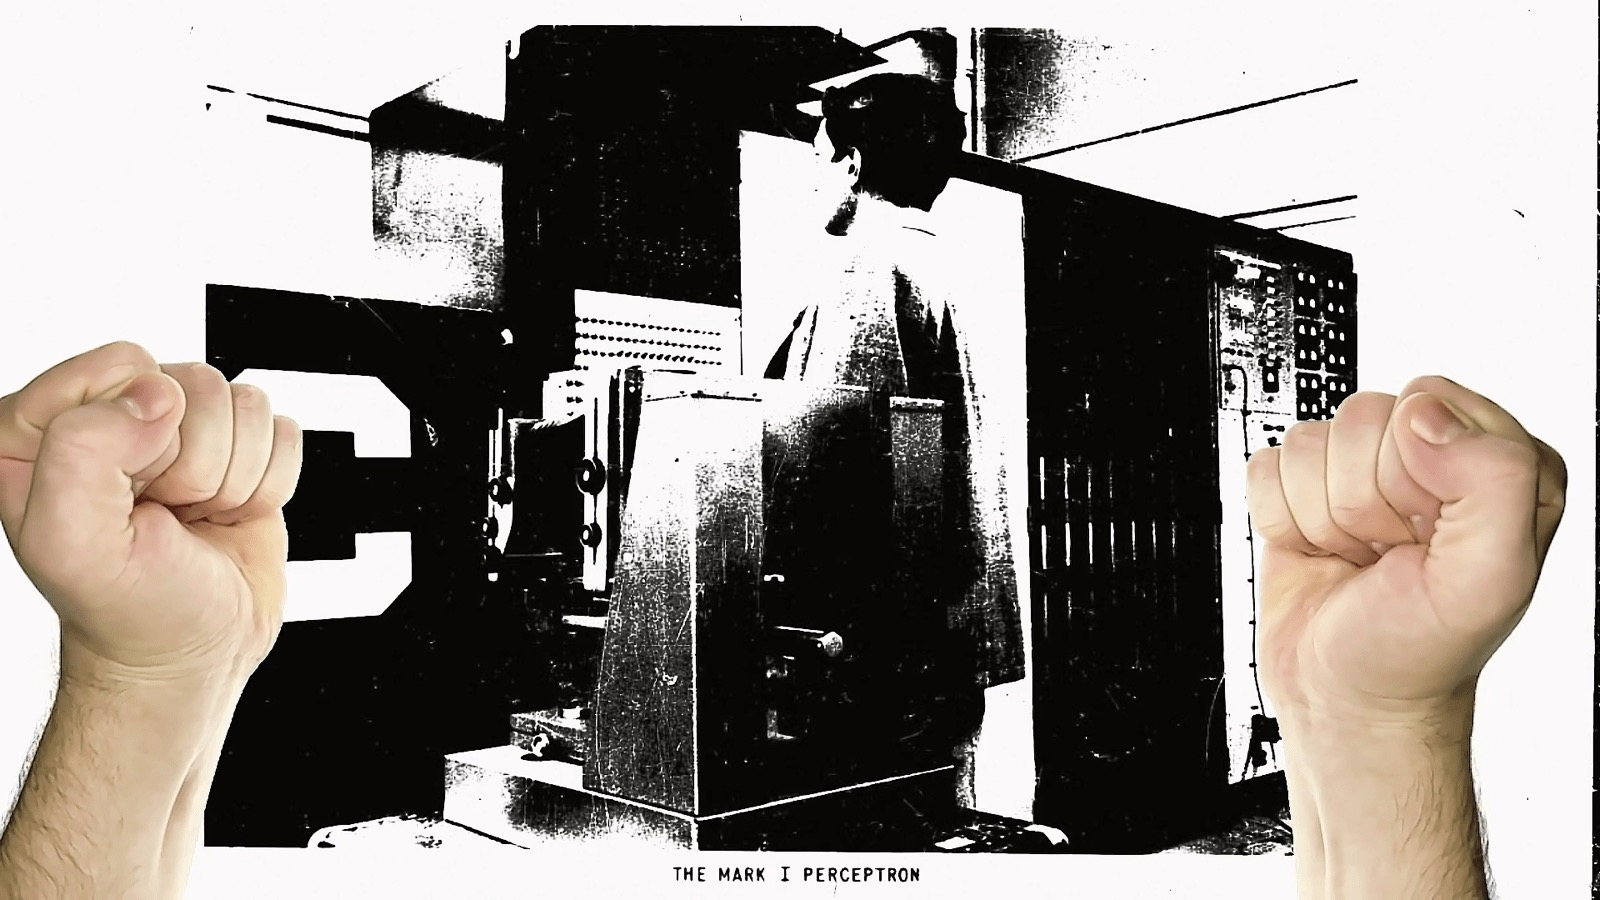 A picture of two hands above an old, grainy image of the Mark I Perceptron, a machine for pattern recognition.